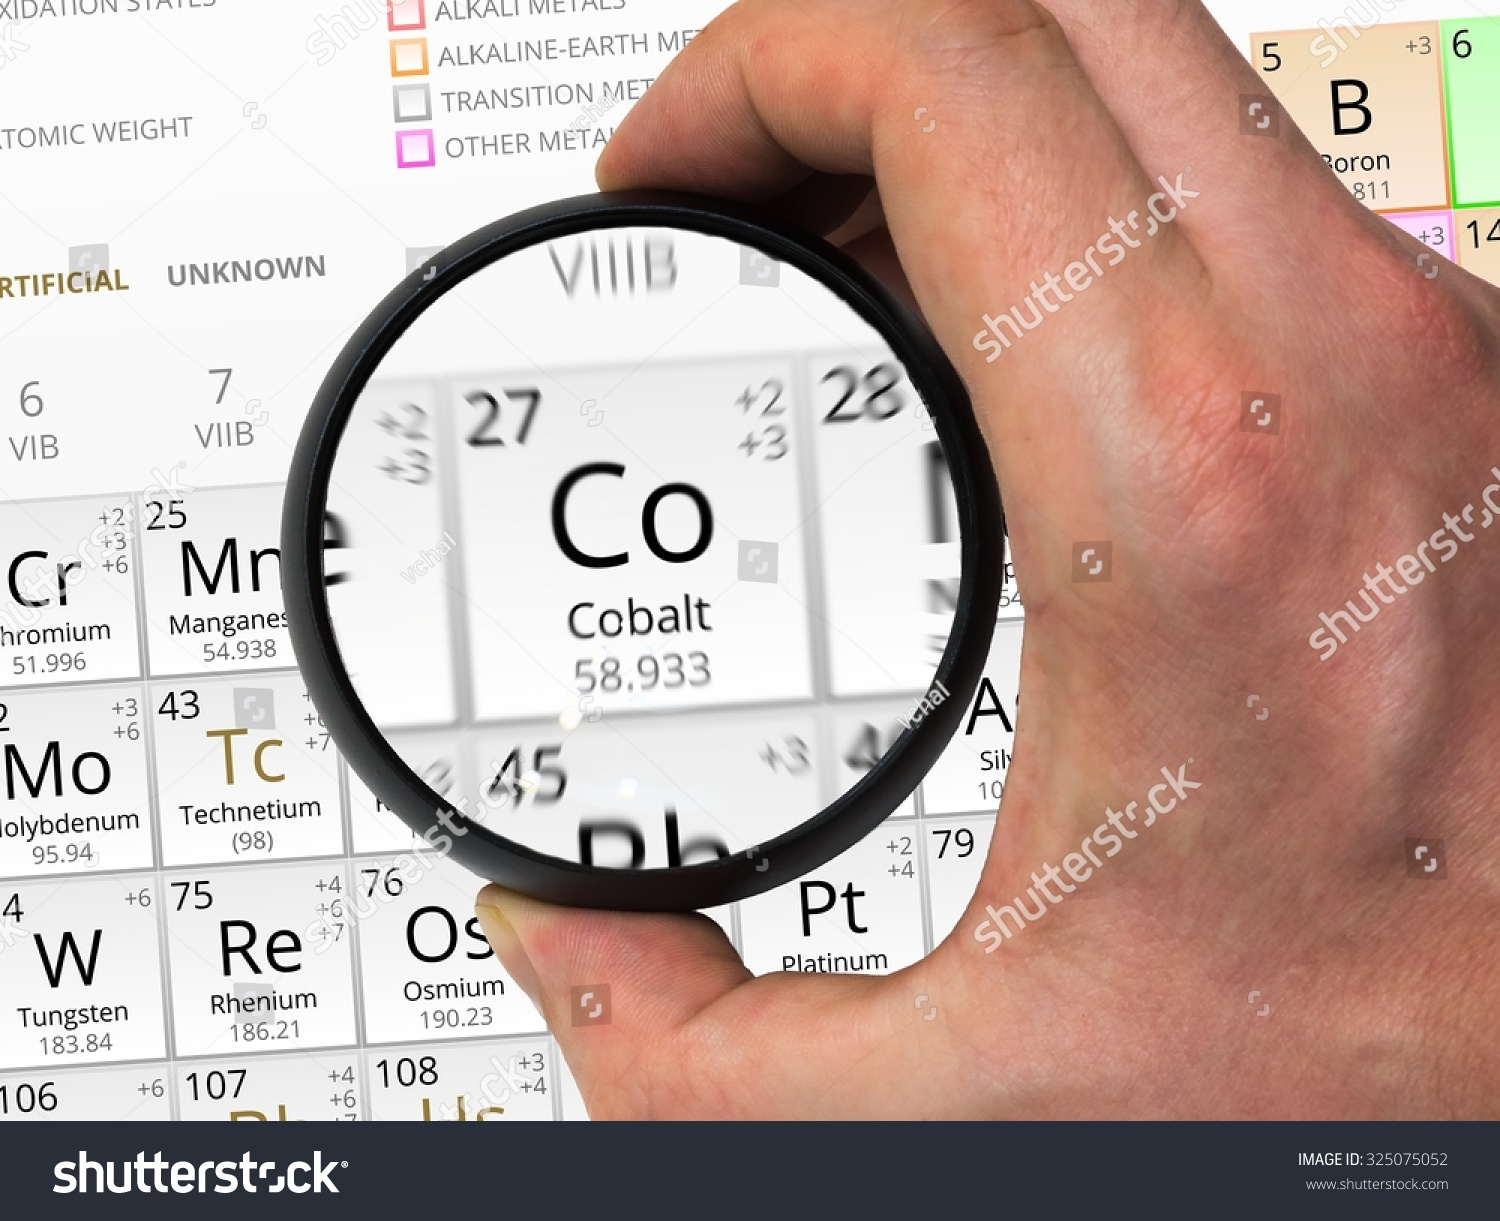 Carbon monoxide symbol periodic table image collections periodic co element symbol images reverse search filename stock photo cobalt symbol co element of the periodic gamestrikefo Image collections